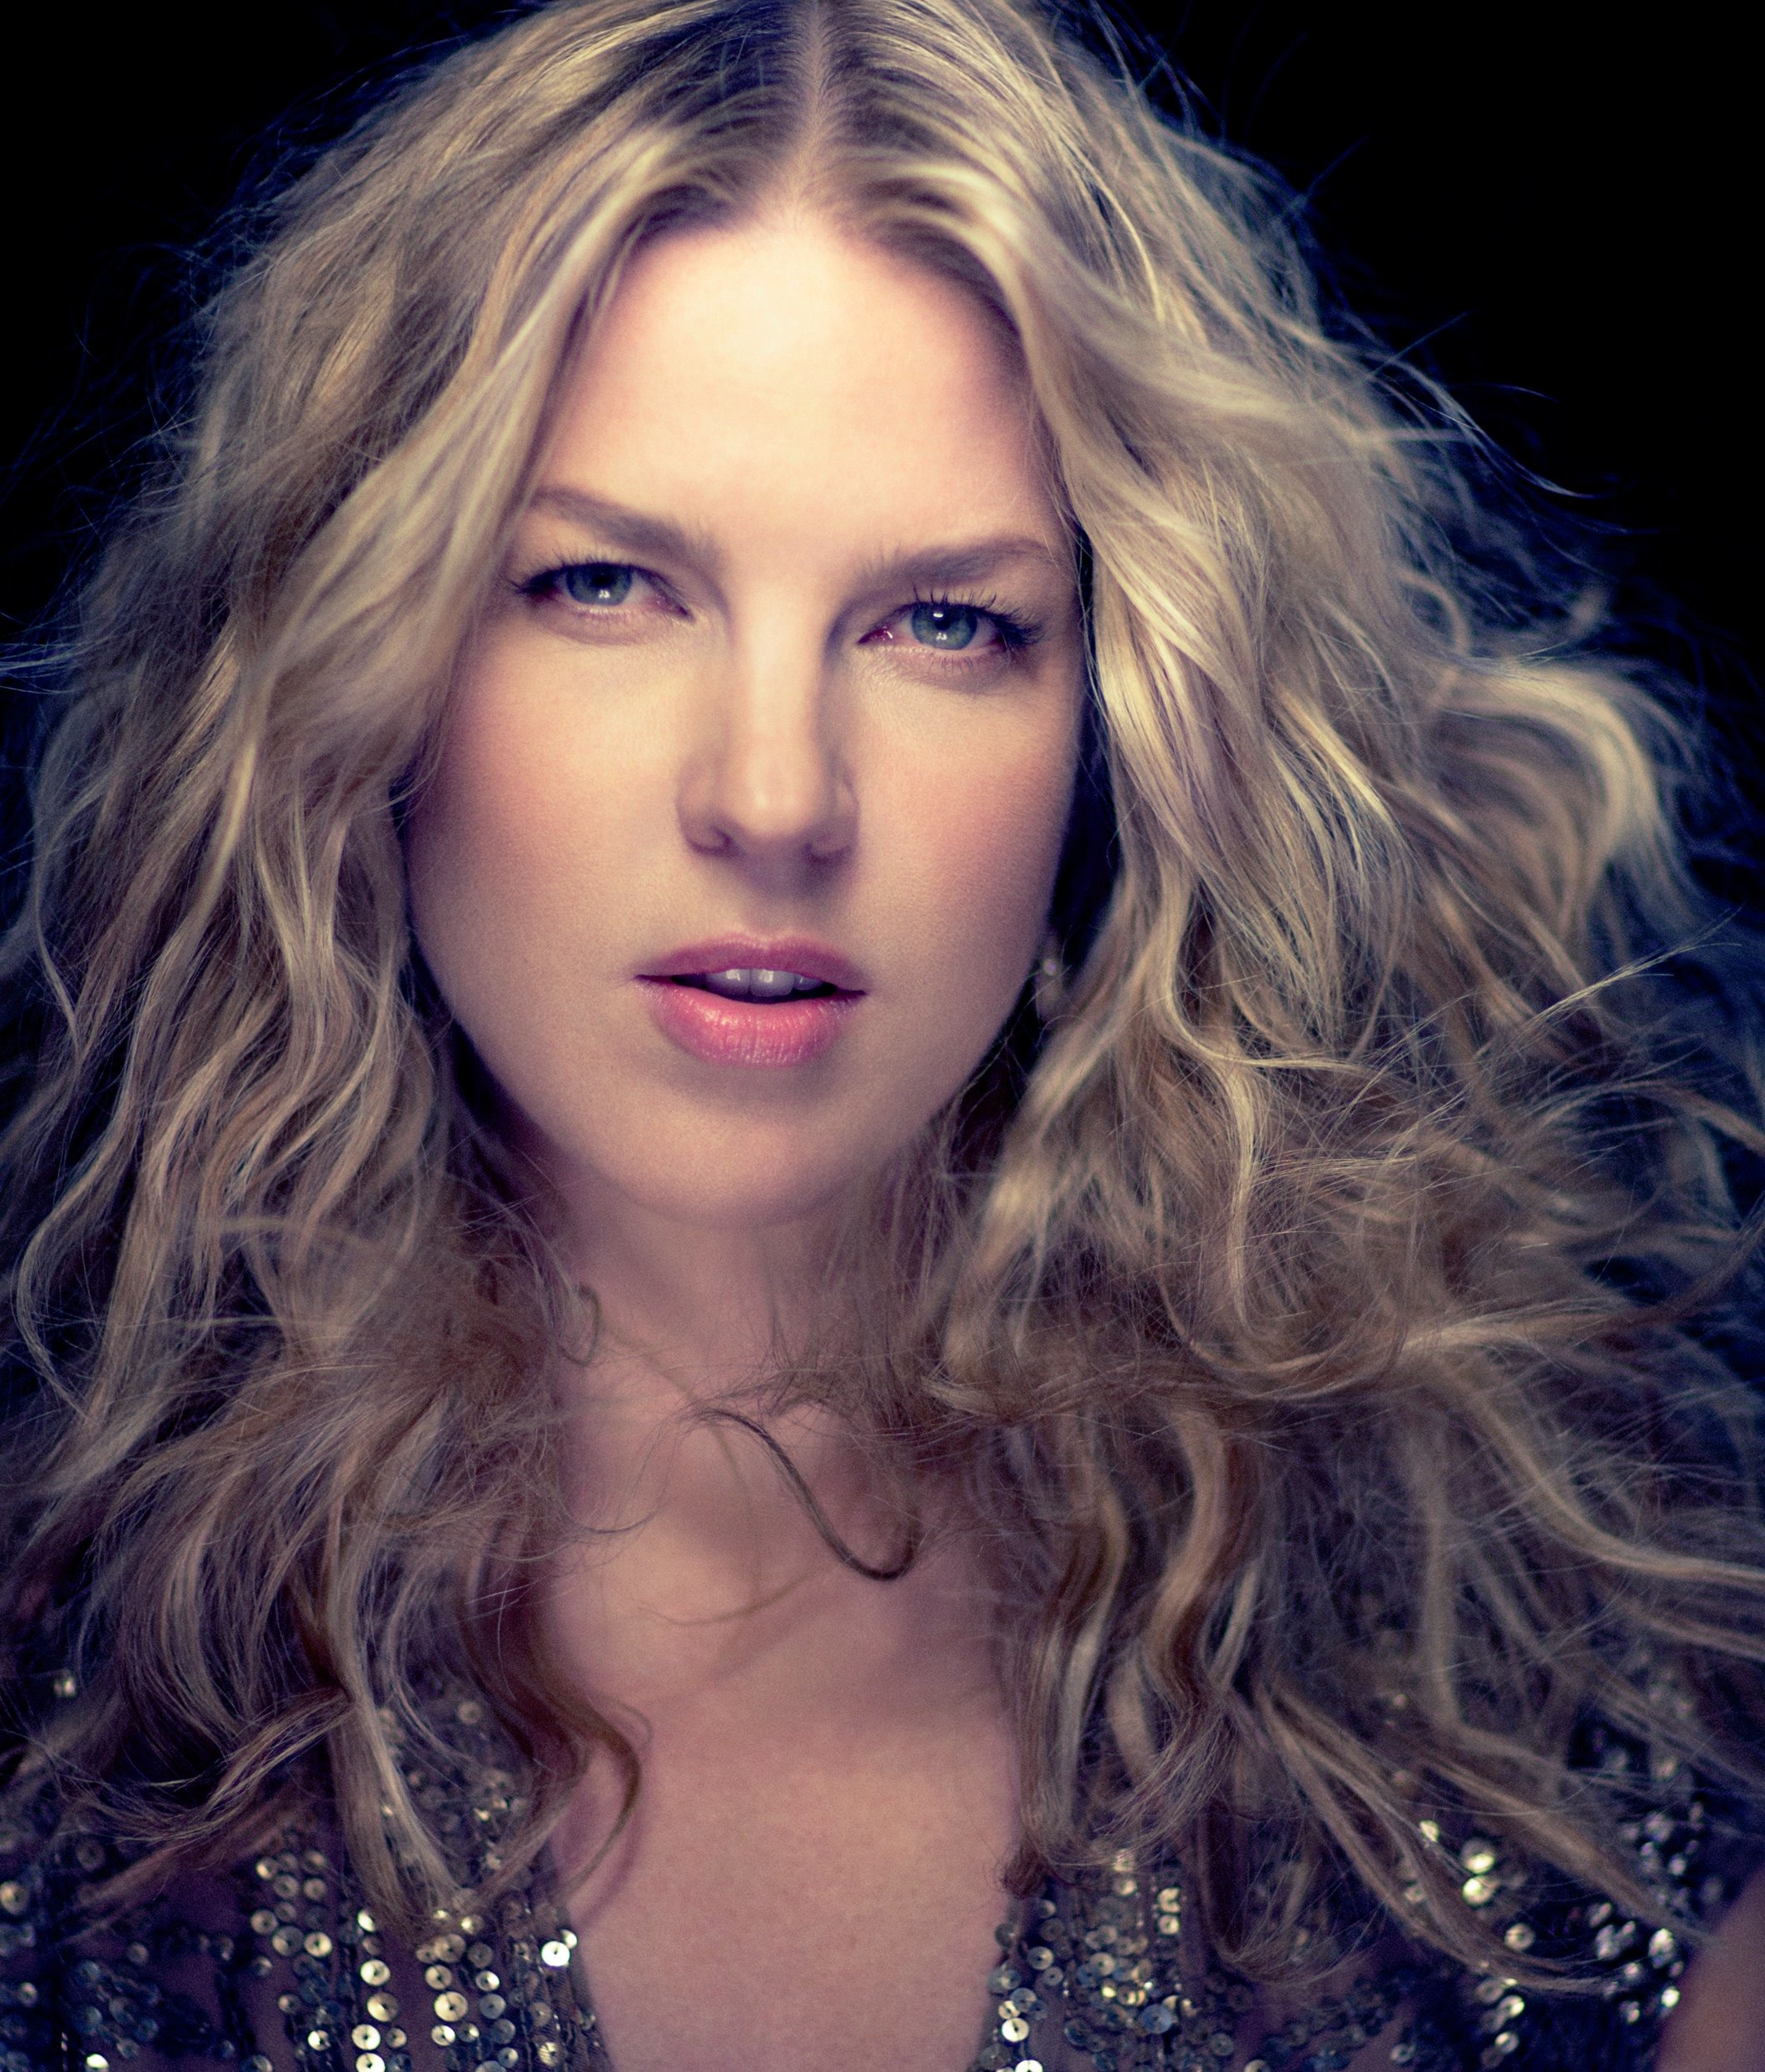 dianakrall03